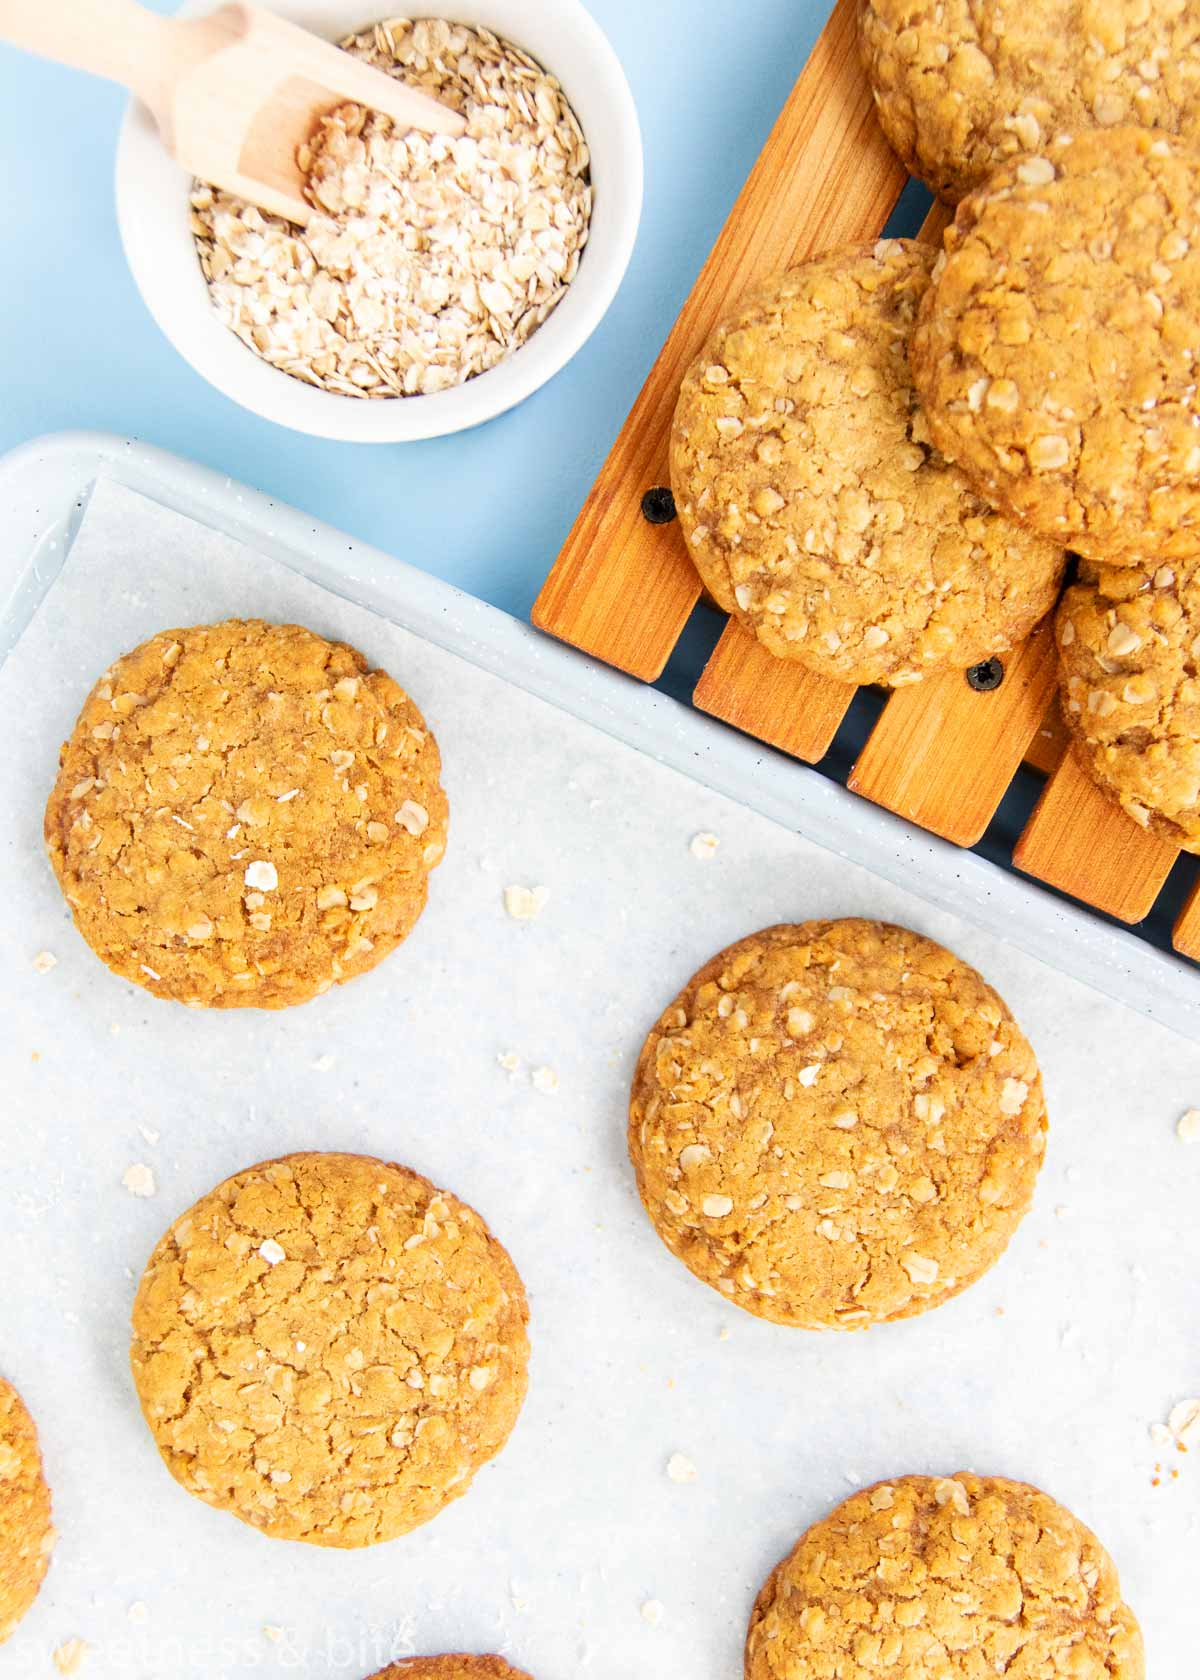 baked anzac biscuits on a tray